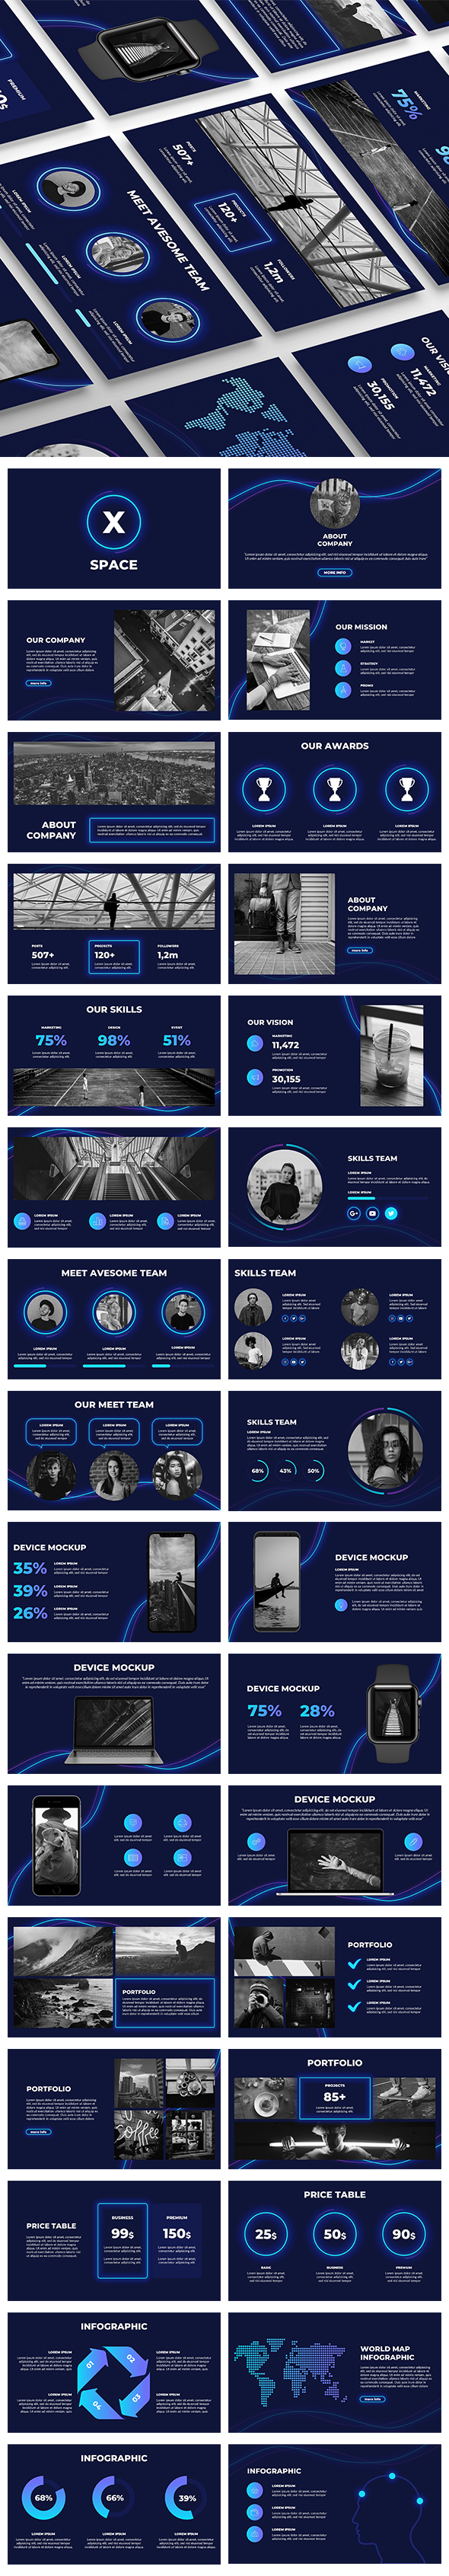 SpaceX PowerPoint Presentation - Business PowerPoint Templates